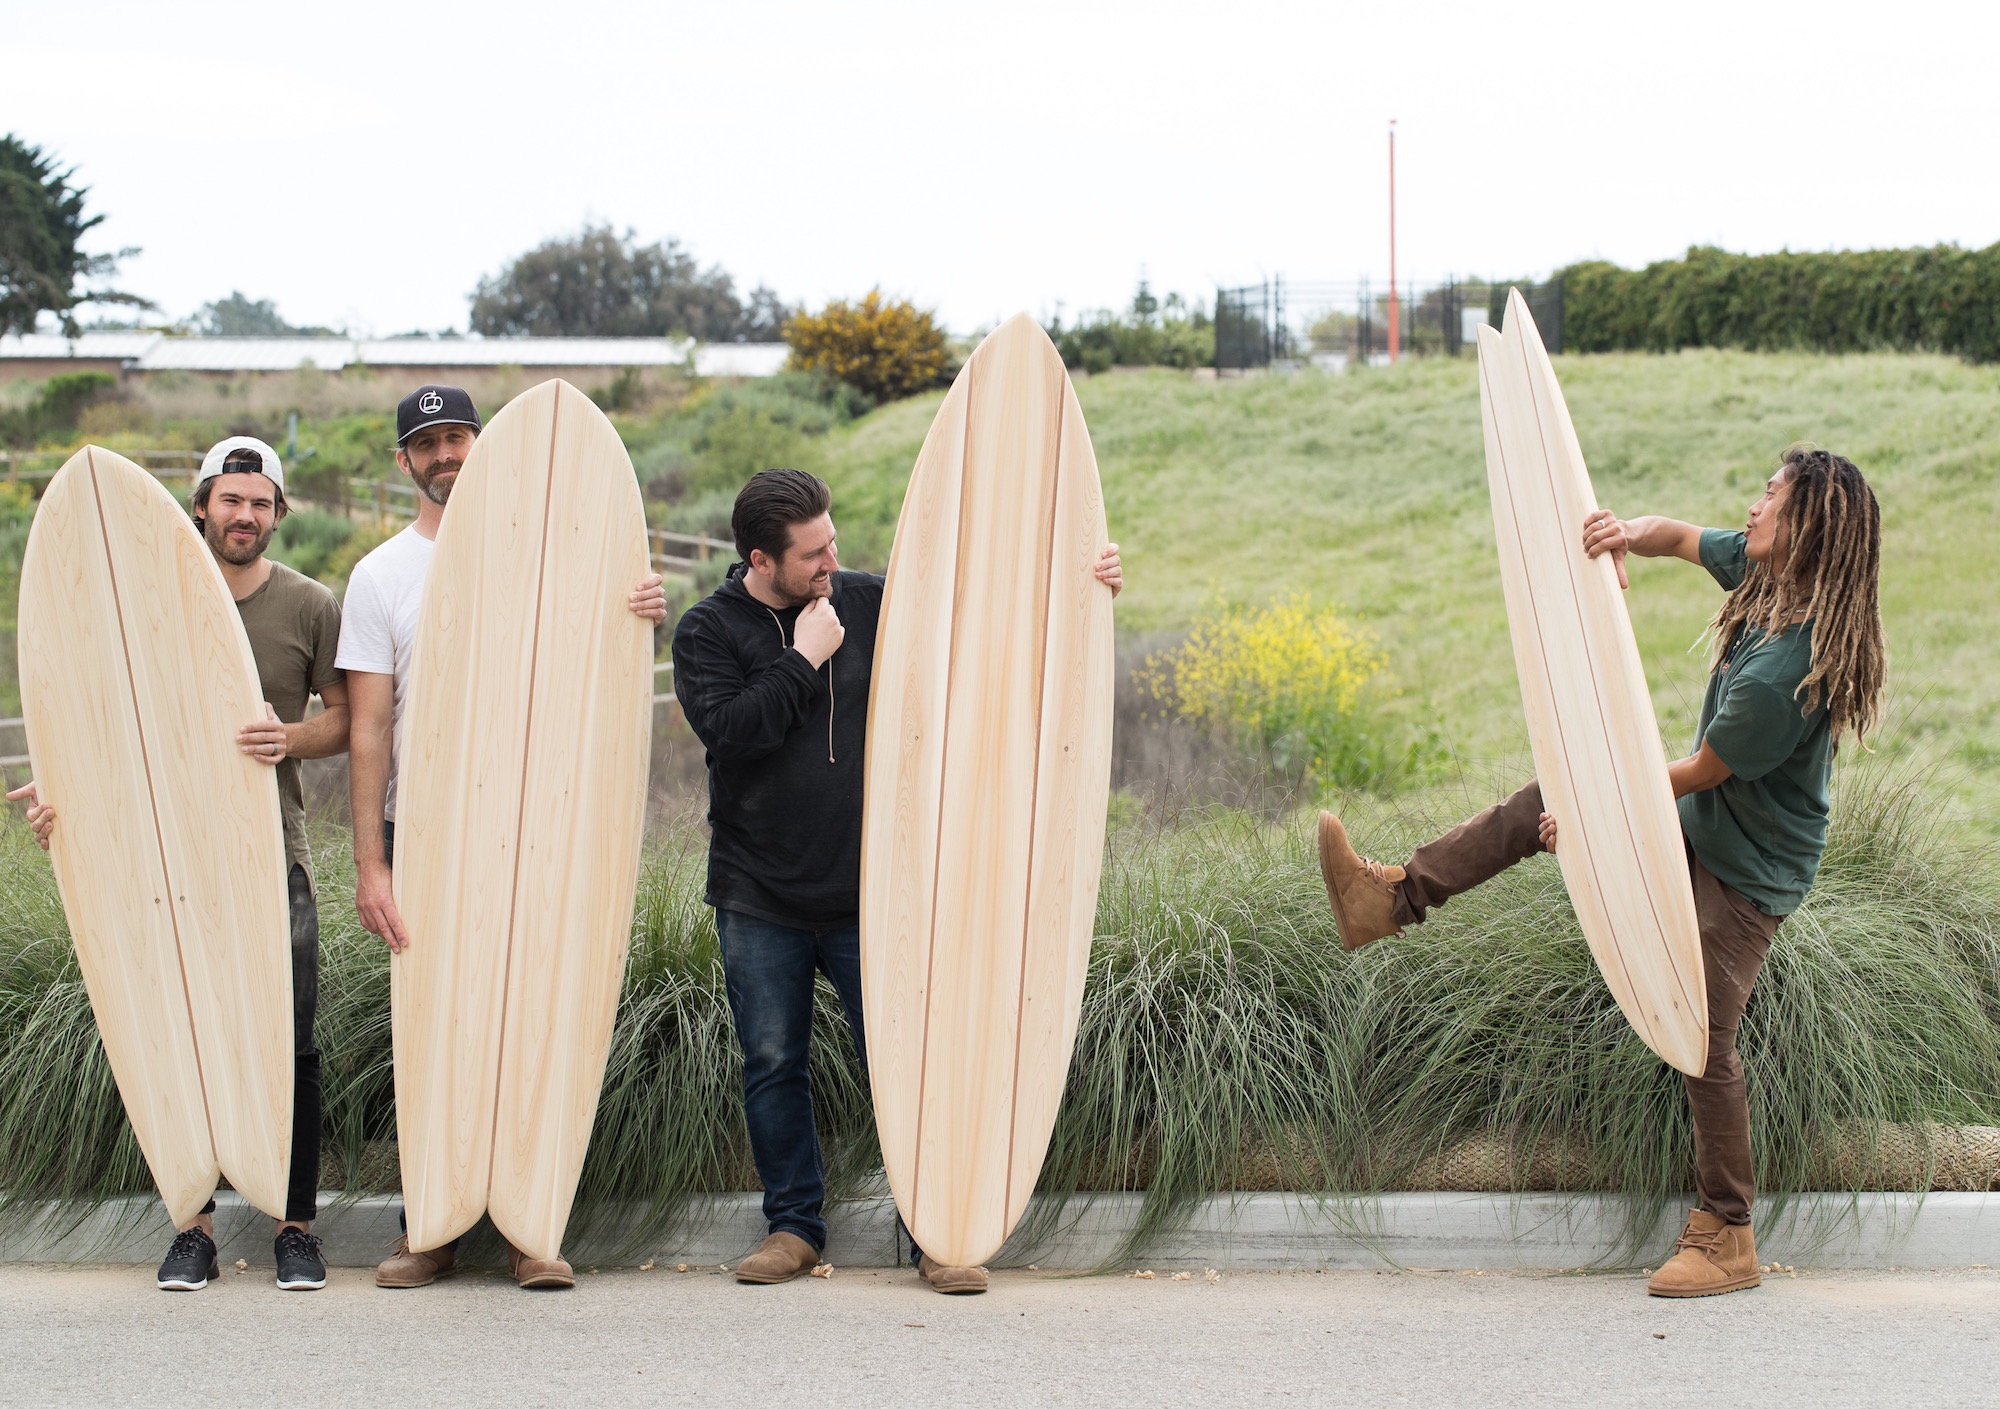 The guys attempt a portrait with their boards, but Sakae does his own thing.